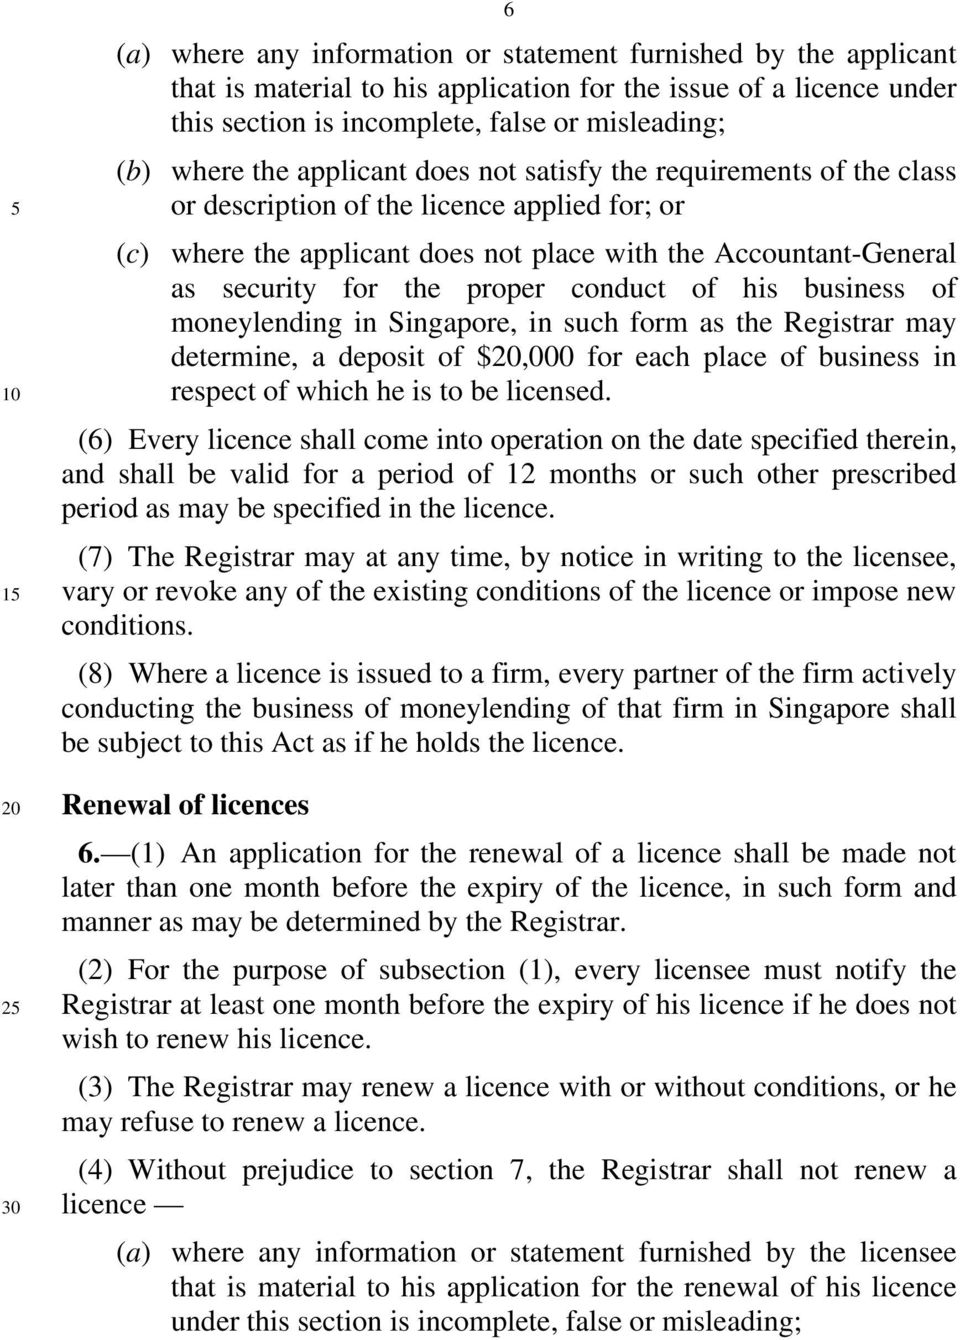 conduct of his business of moneylending in Singapore, in such form as the Registrar may determine, a deposit of $,000 for each place of business in respect of which he is to be licensed.